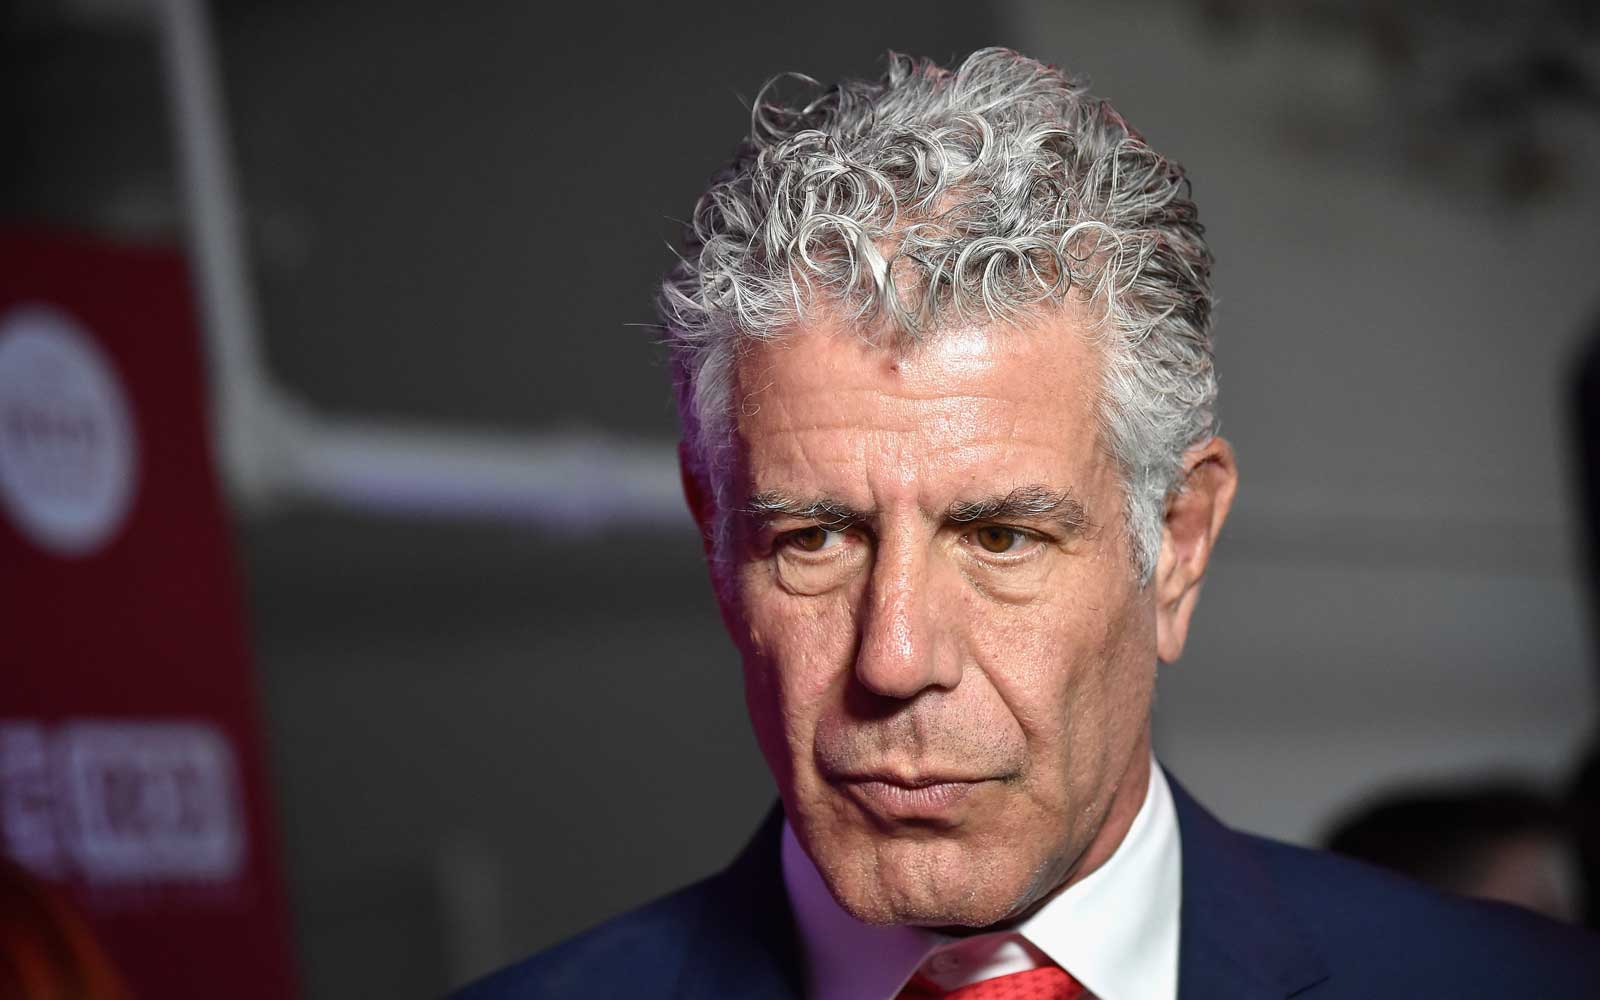 Anthony Bourdain Market's CEO Steps Down